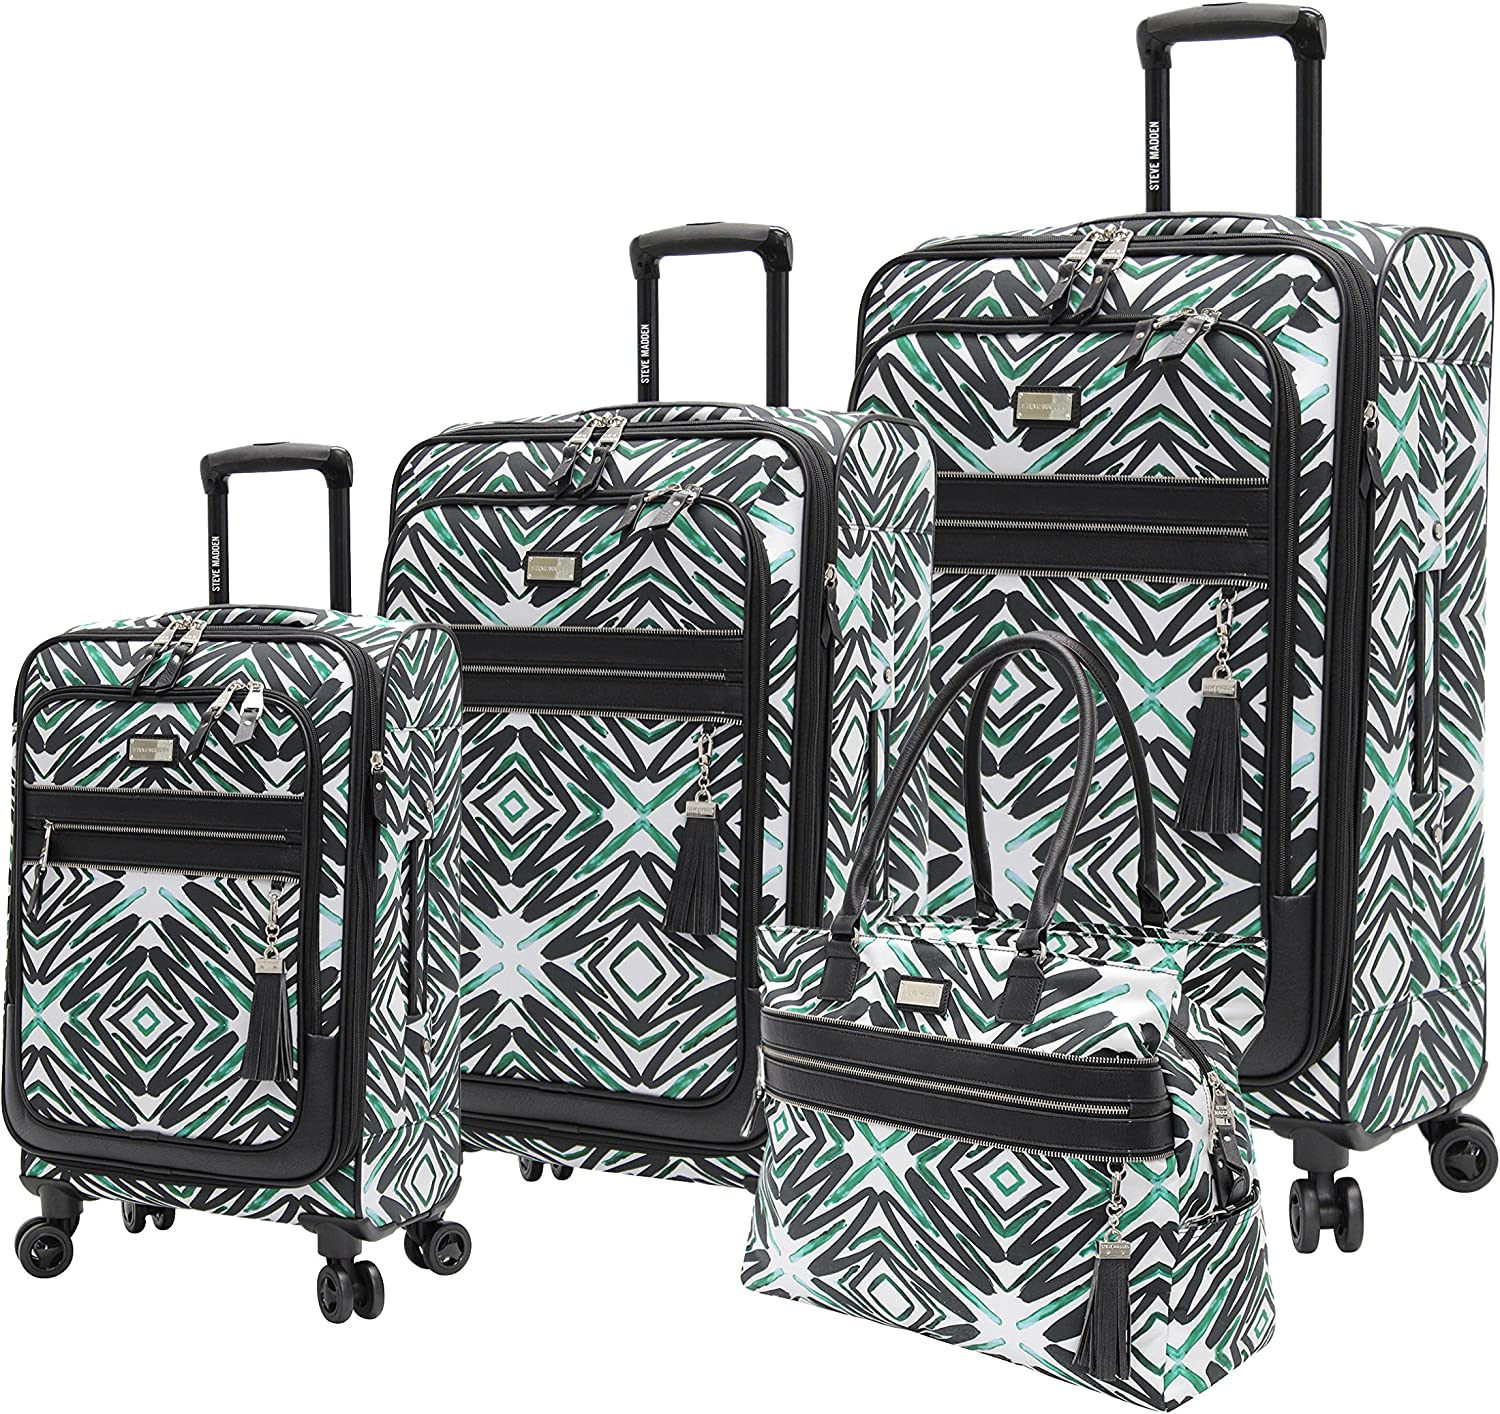 Steve Madden Designer Luggage Collection - 4 Piece Softside Expandable Lightweight Spinner Suitcase Set - Travel Set includes a Tote Bag, 21 Inch Carry on, 25 Inch & 29 Inch Checked Suitcases (Tribal)